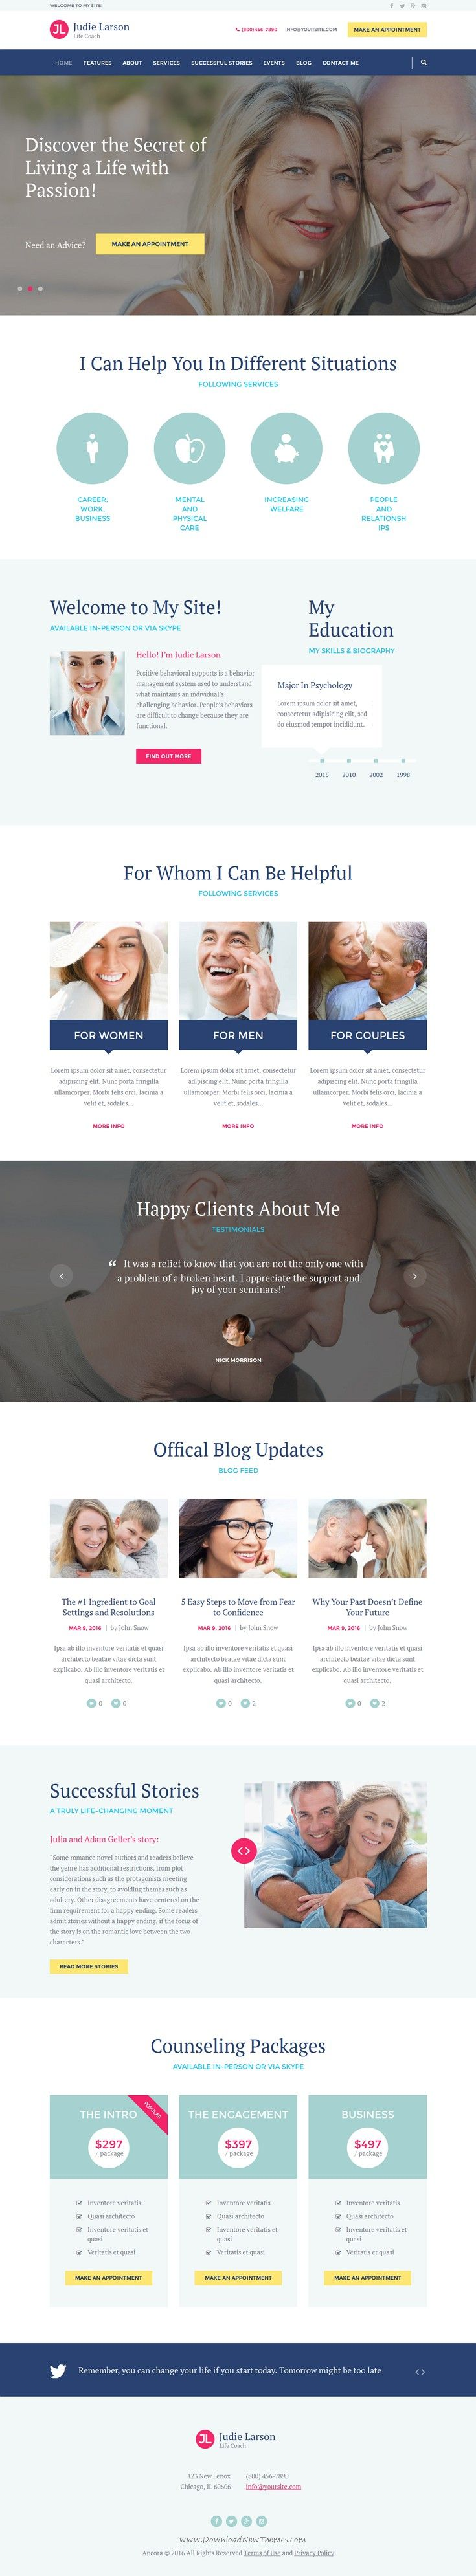 B+B: Again, not our favorite look. But we do like the icons and the 'happy clients about me' sections!